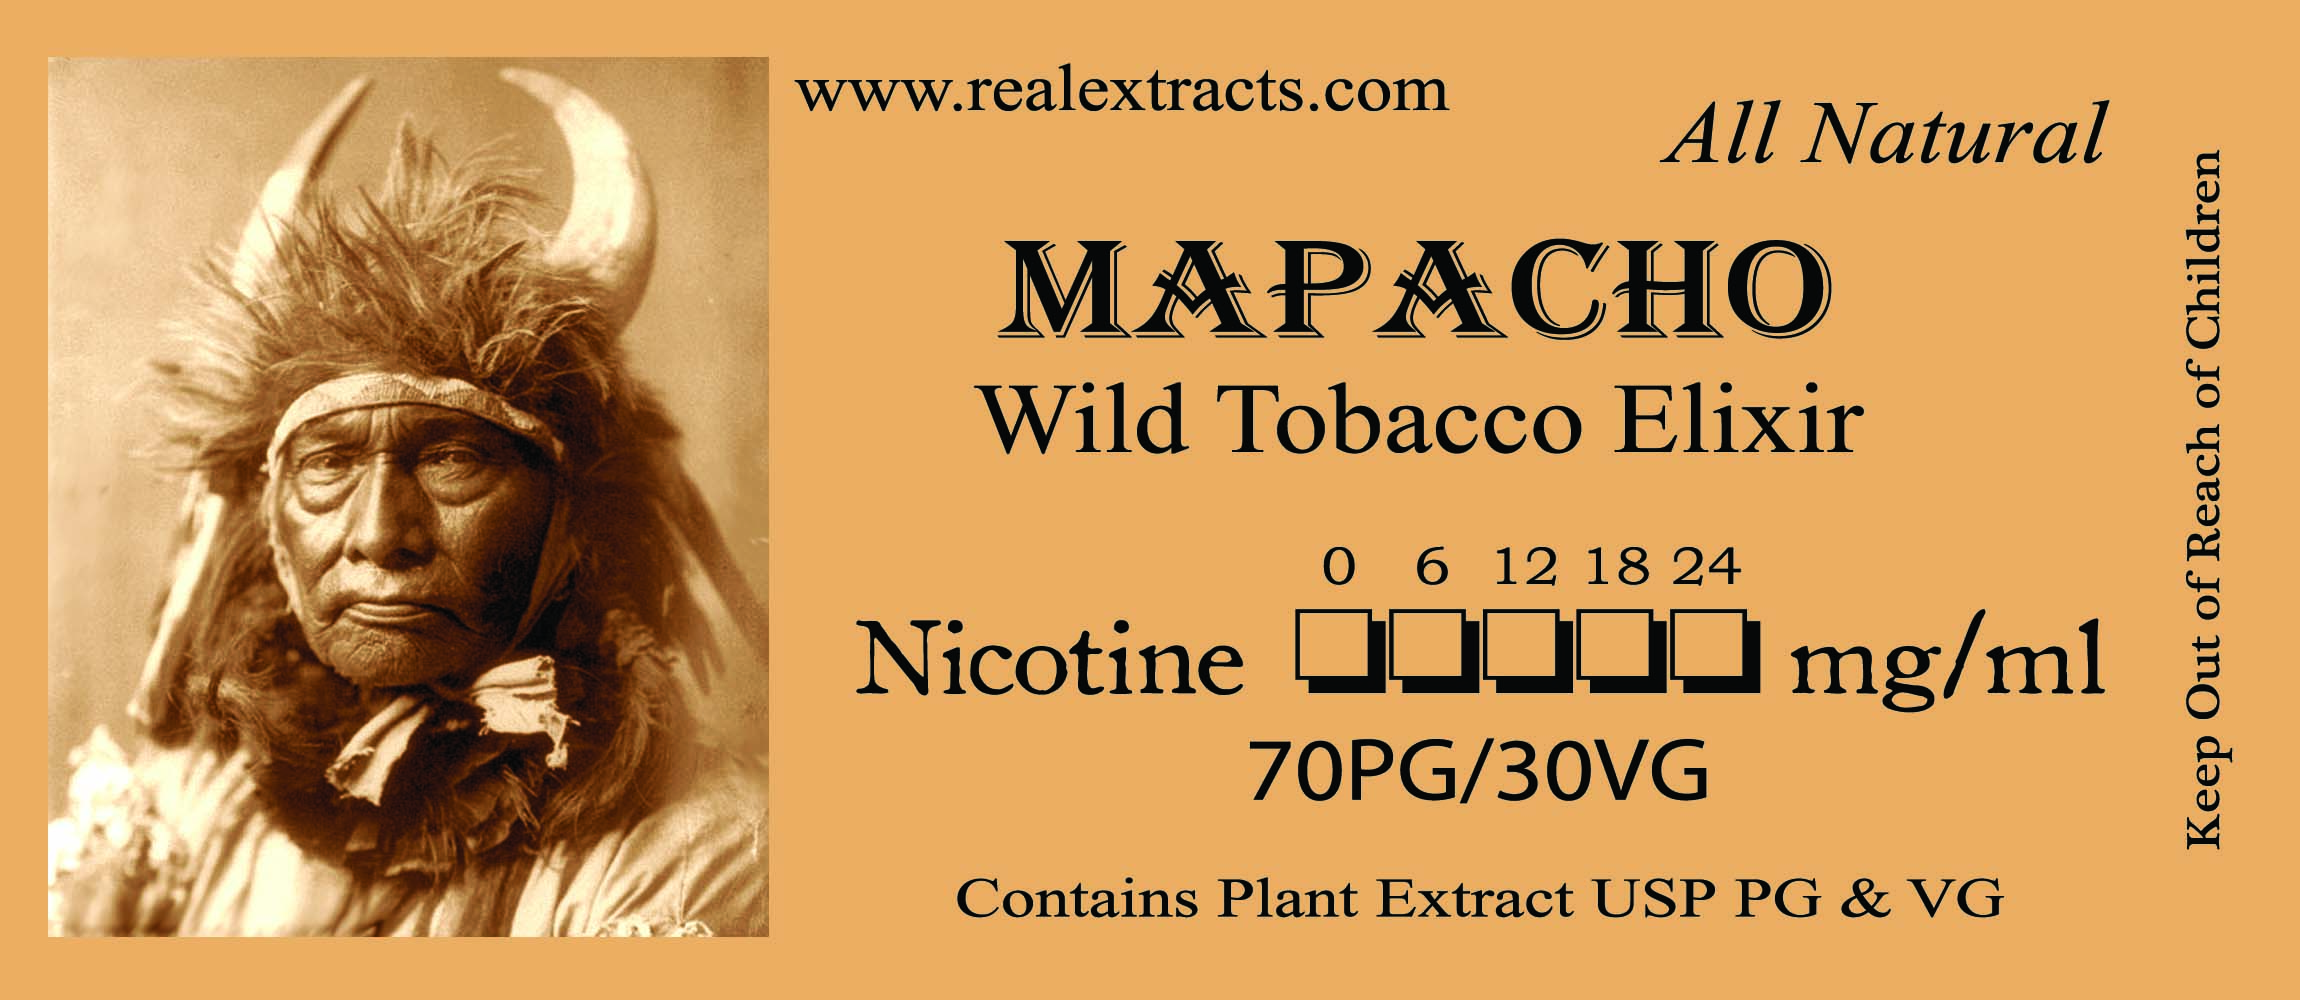 MAPACHO Label